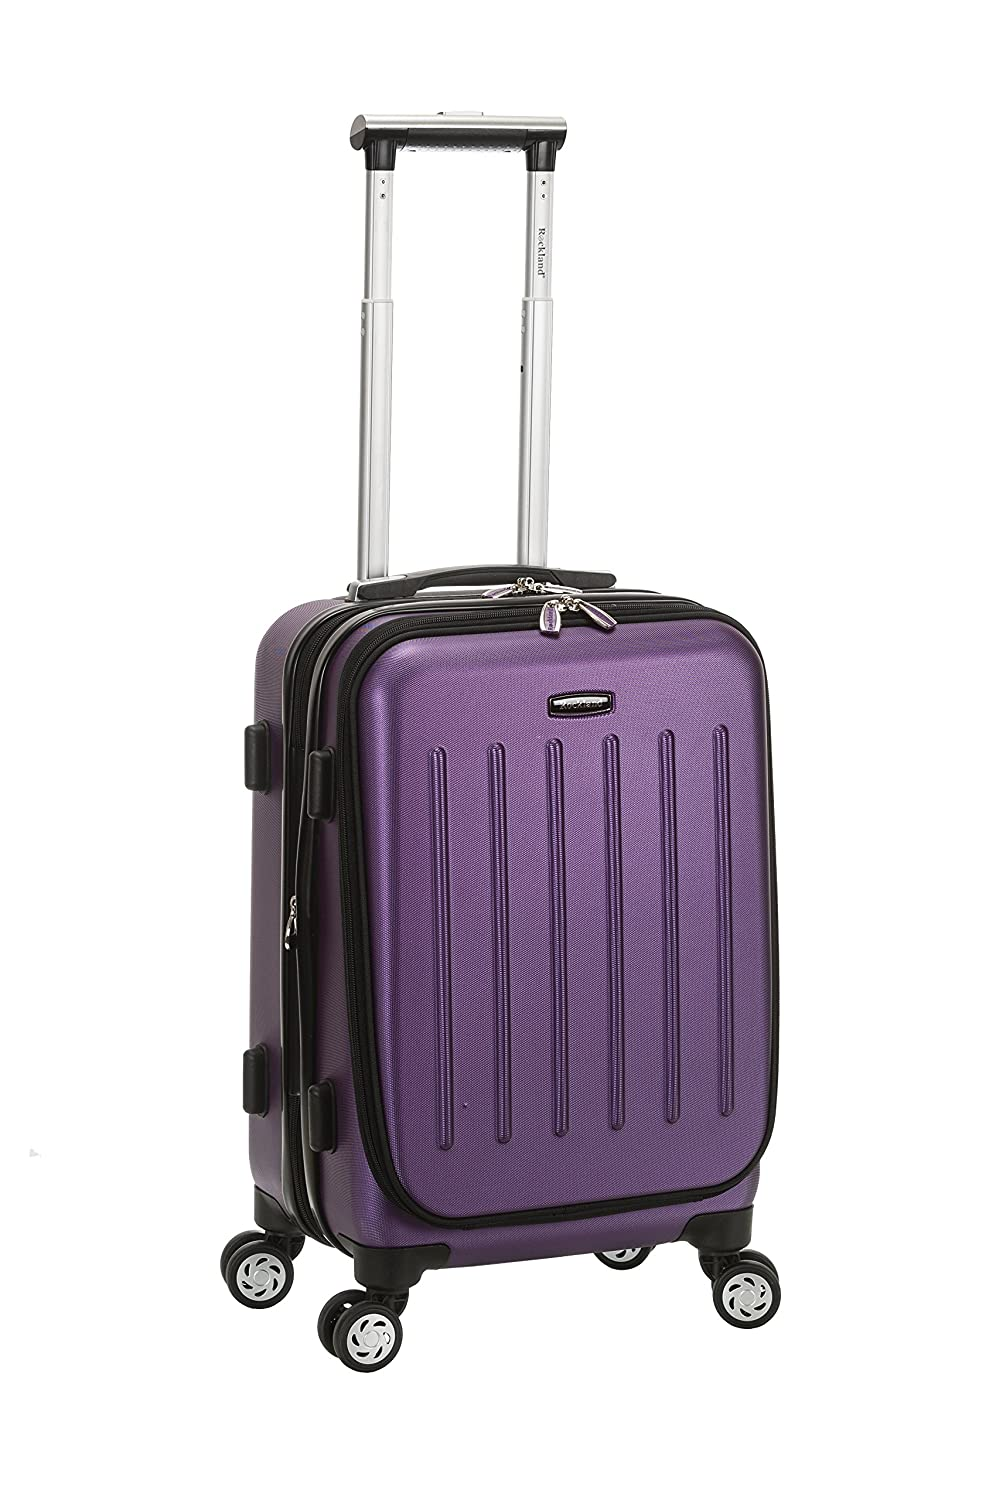 Rockland Titan 48,3 cm ABS Carry on, Violet (Violet) - F2401-PURPLE 3 cm ABS Carry on Fox Luggage